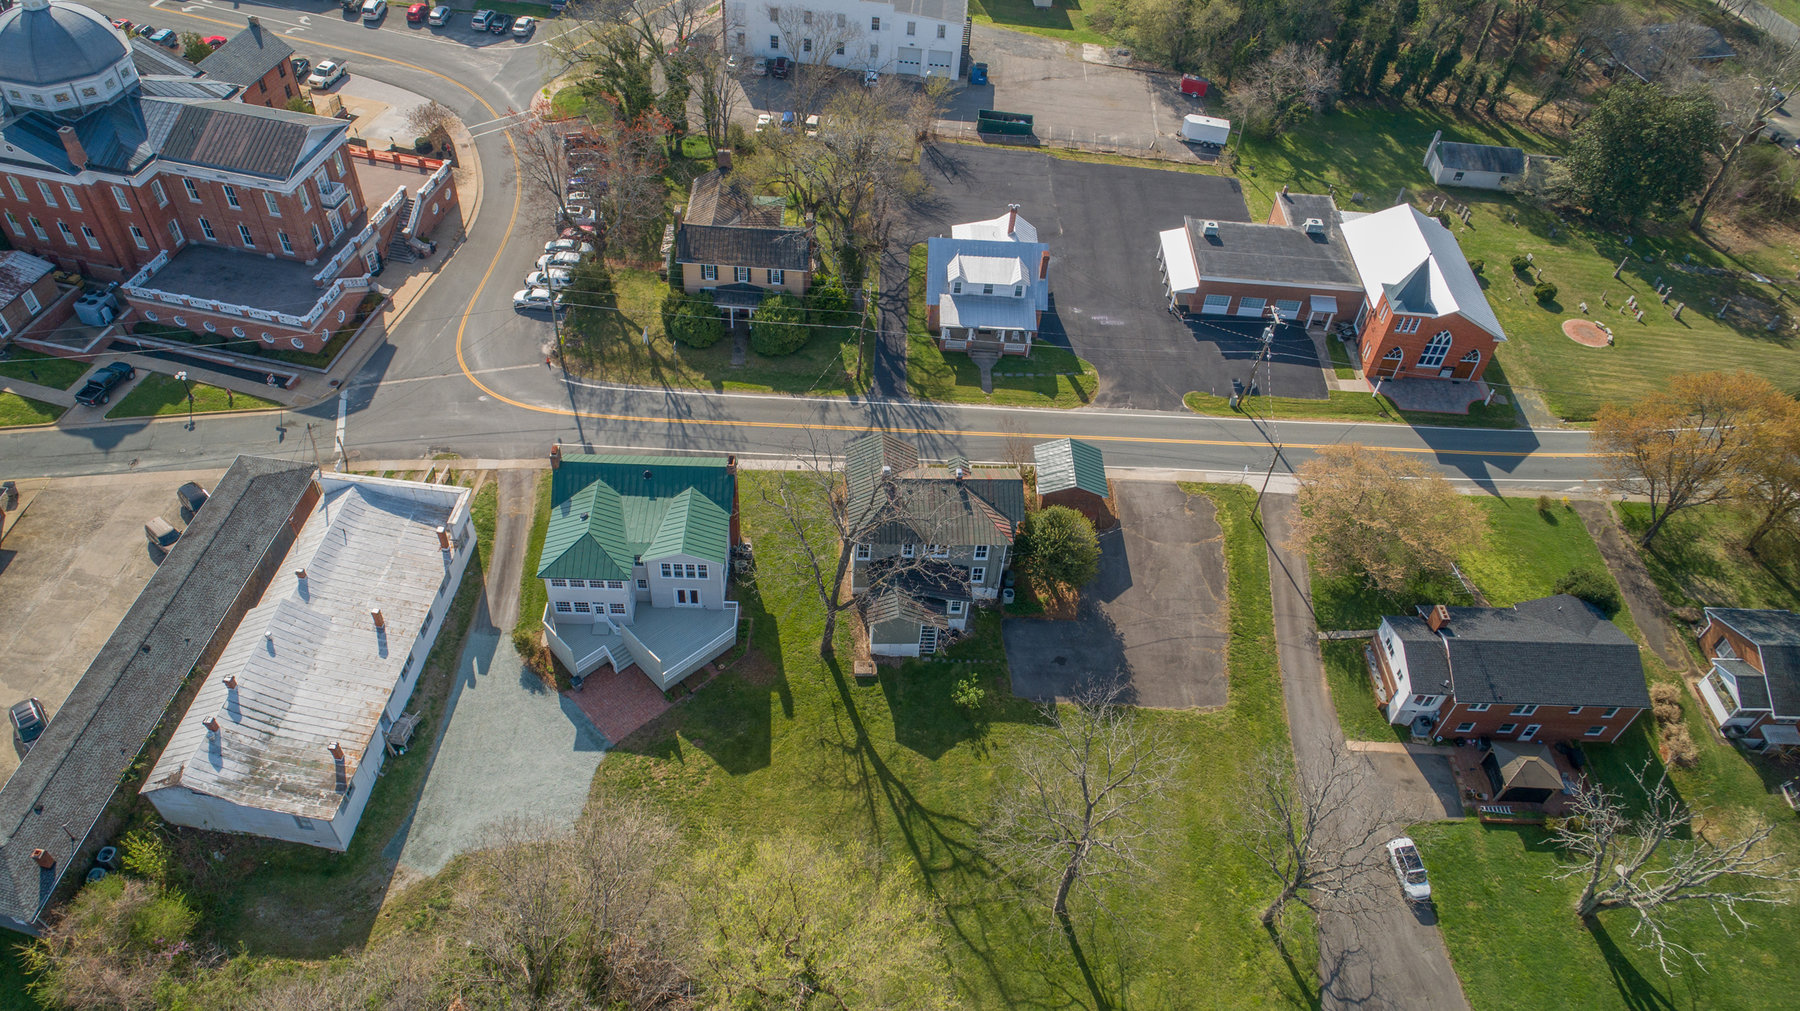 Image for 9 Room/2 half bathroom Home/Office Building (Circa 1905) on .50 +/- Acres in Downtown Louisa, VA